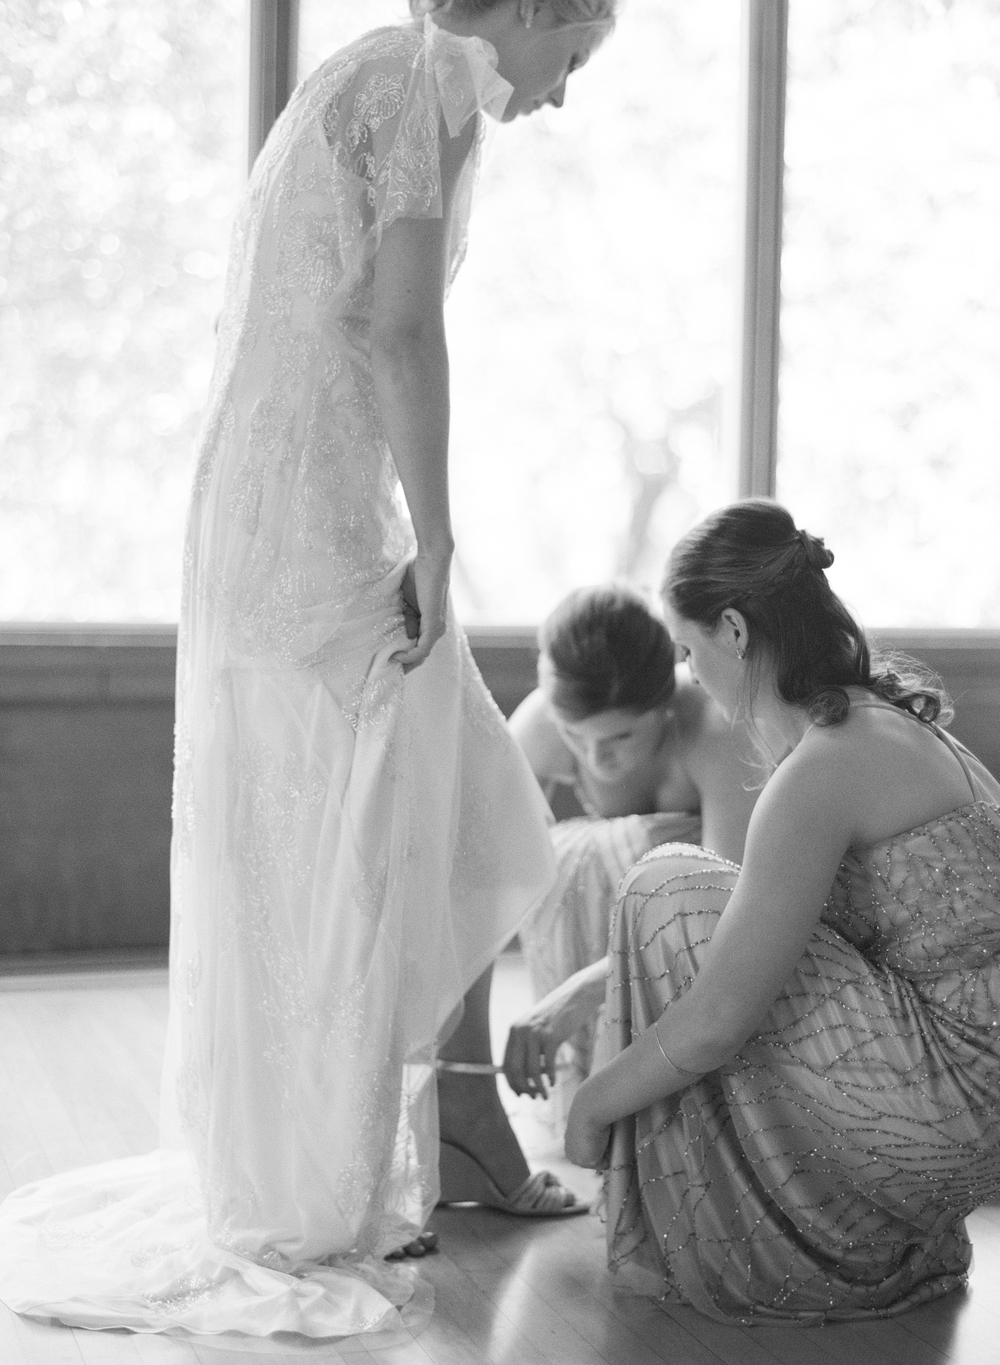 Whitney, dressed in an elegant sheath dress steps into her shoes held by her bridal party while getting ready; photo by Sylvie Gil